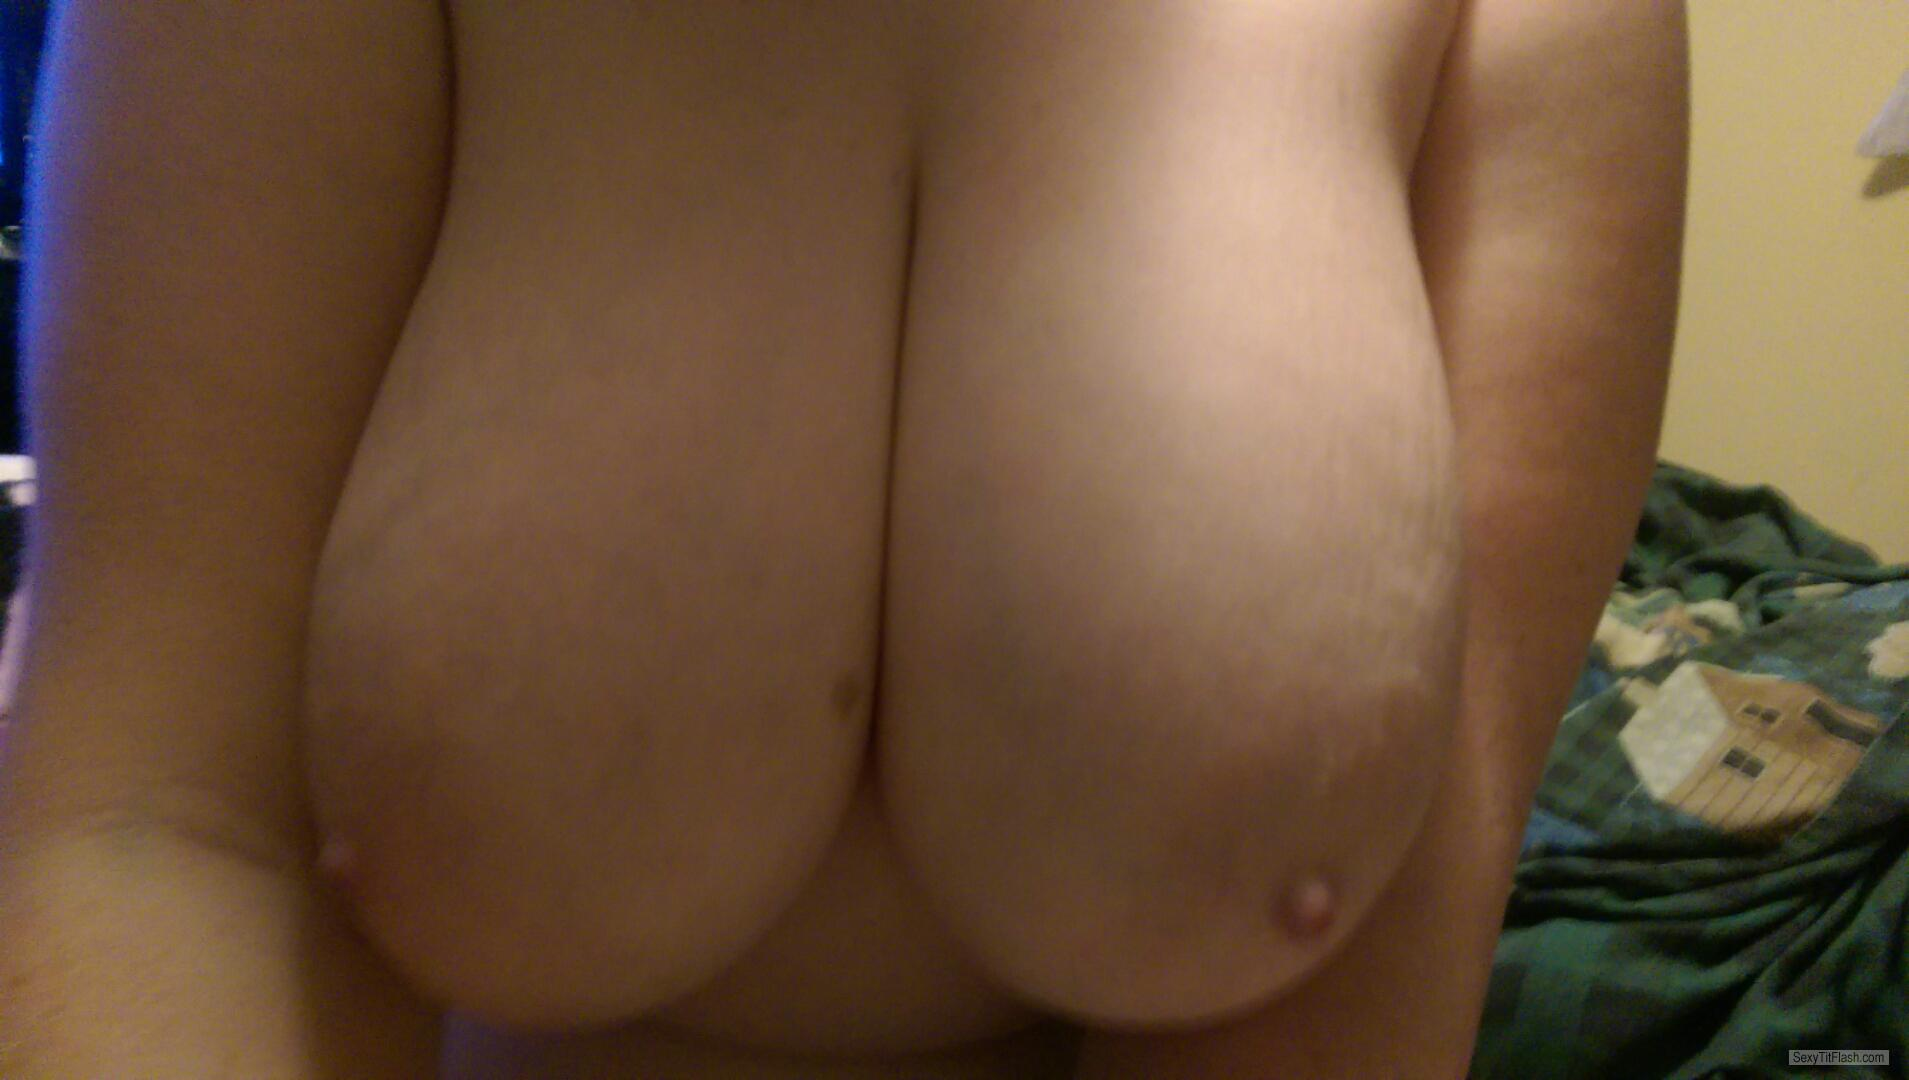 Extremely big Tits Of My Girlfriend JJ Cup